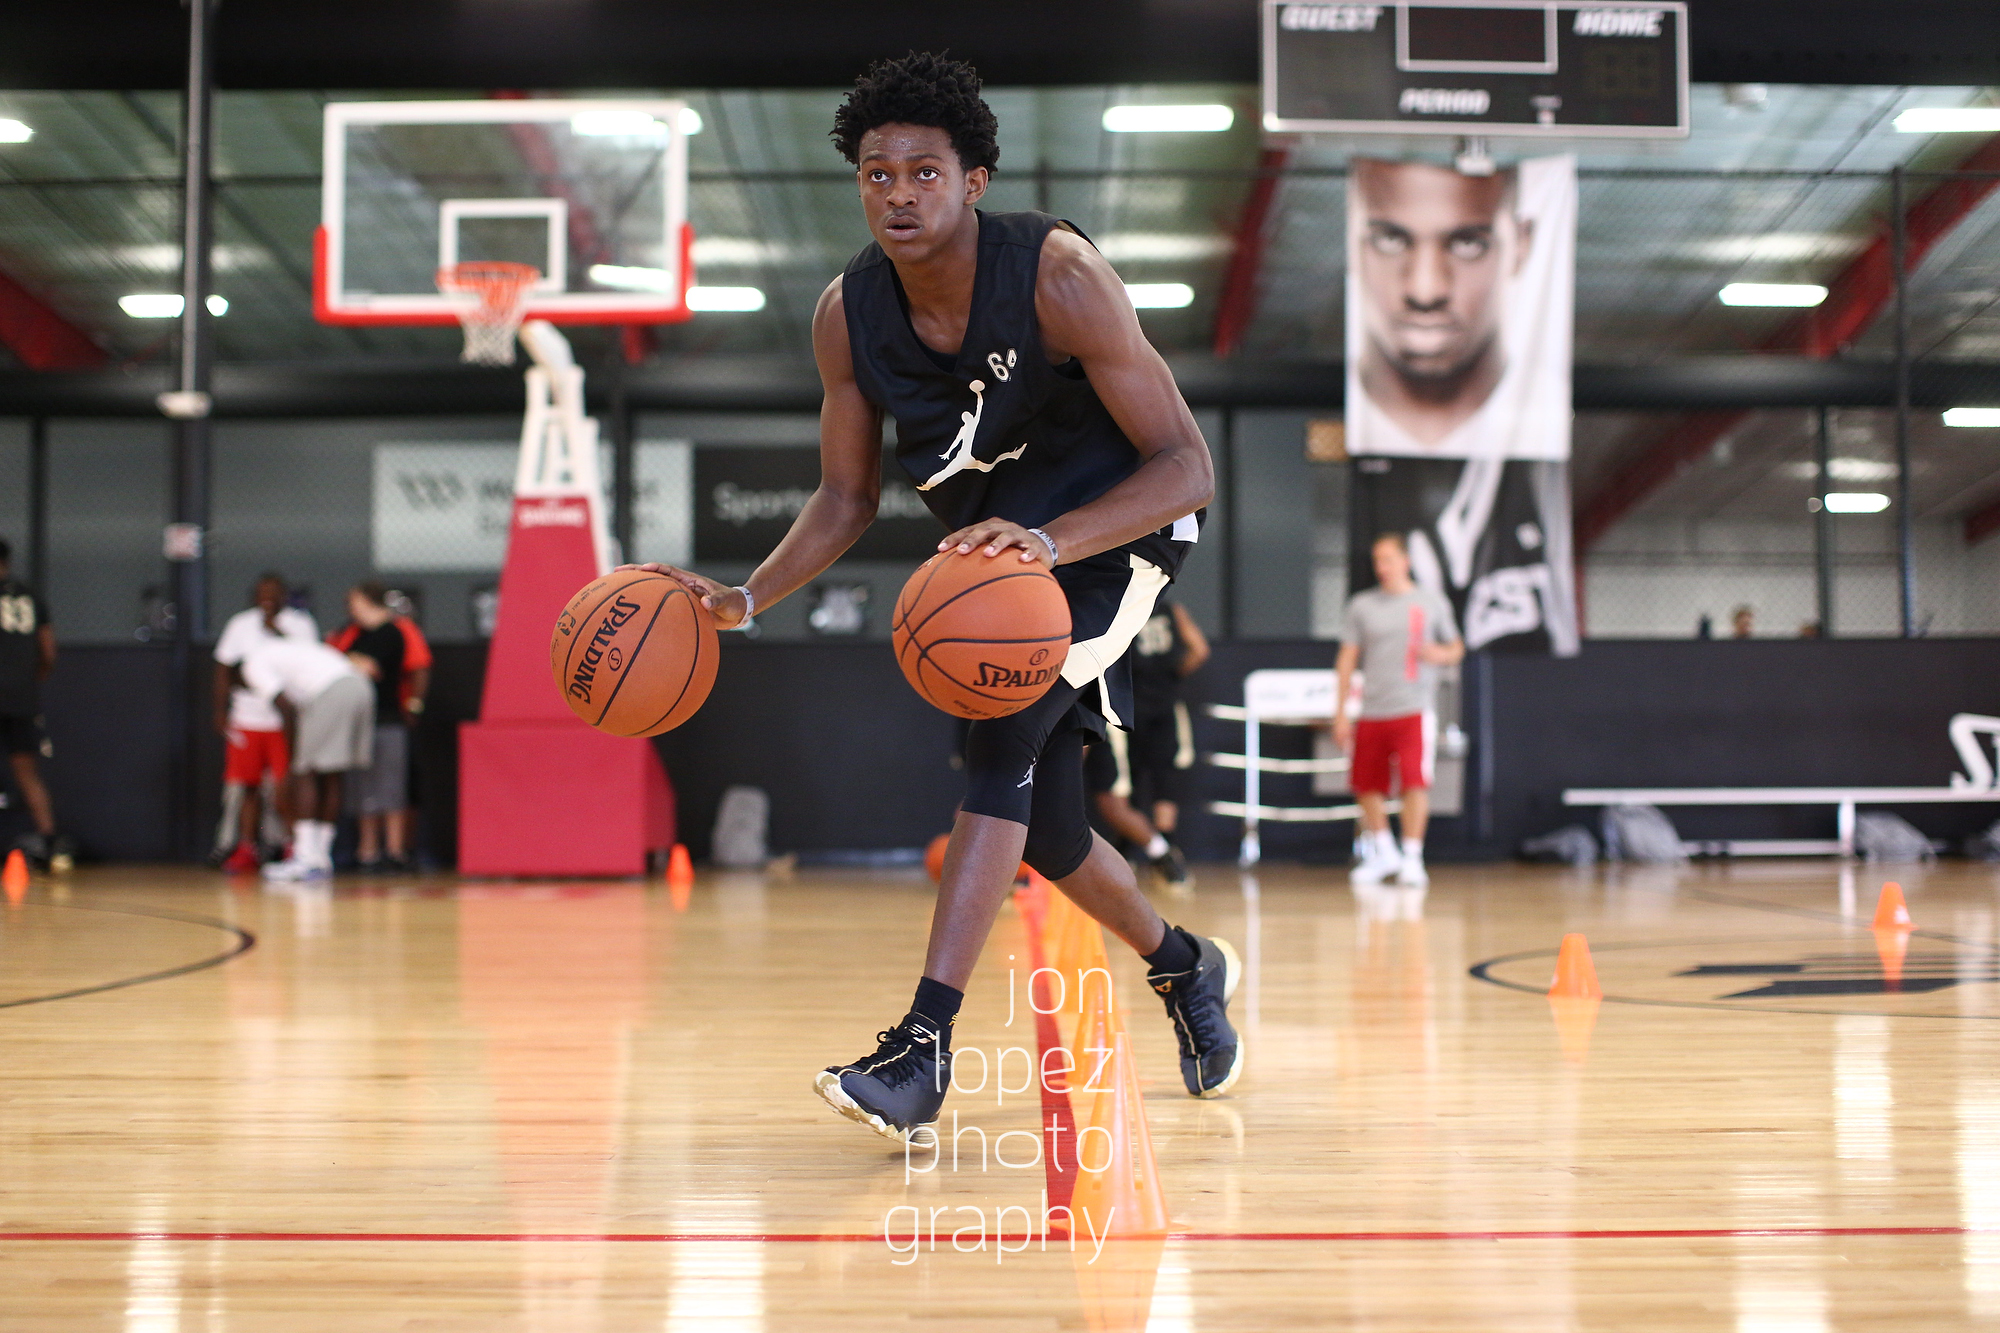 WINSTON-SALEM, NC. JUNE 24, 2016 - CP3 Camp. De�Aaron Fox #64 of Kentucky dribbles. (Photo by Jon Lopez/Nike)